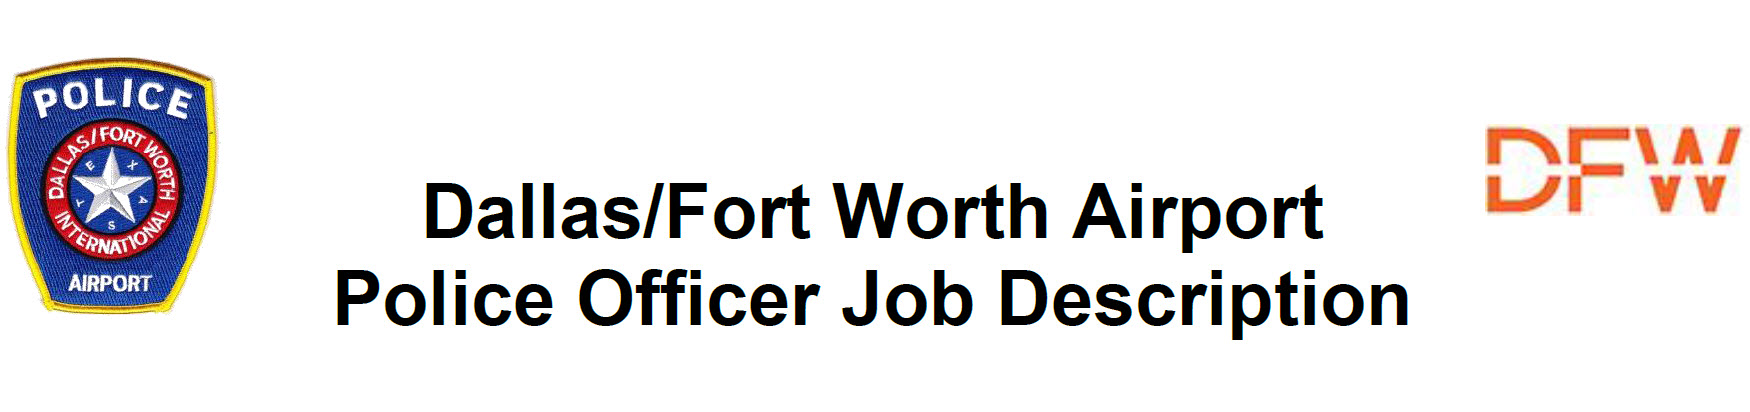 Dallas Fort Worth Airport of Public Safety, TX Police Jobs